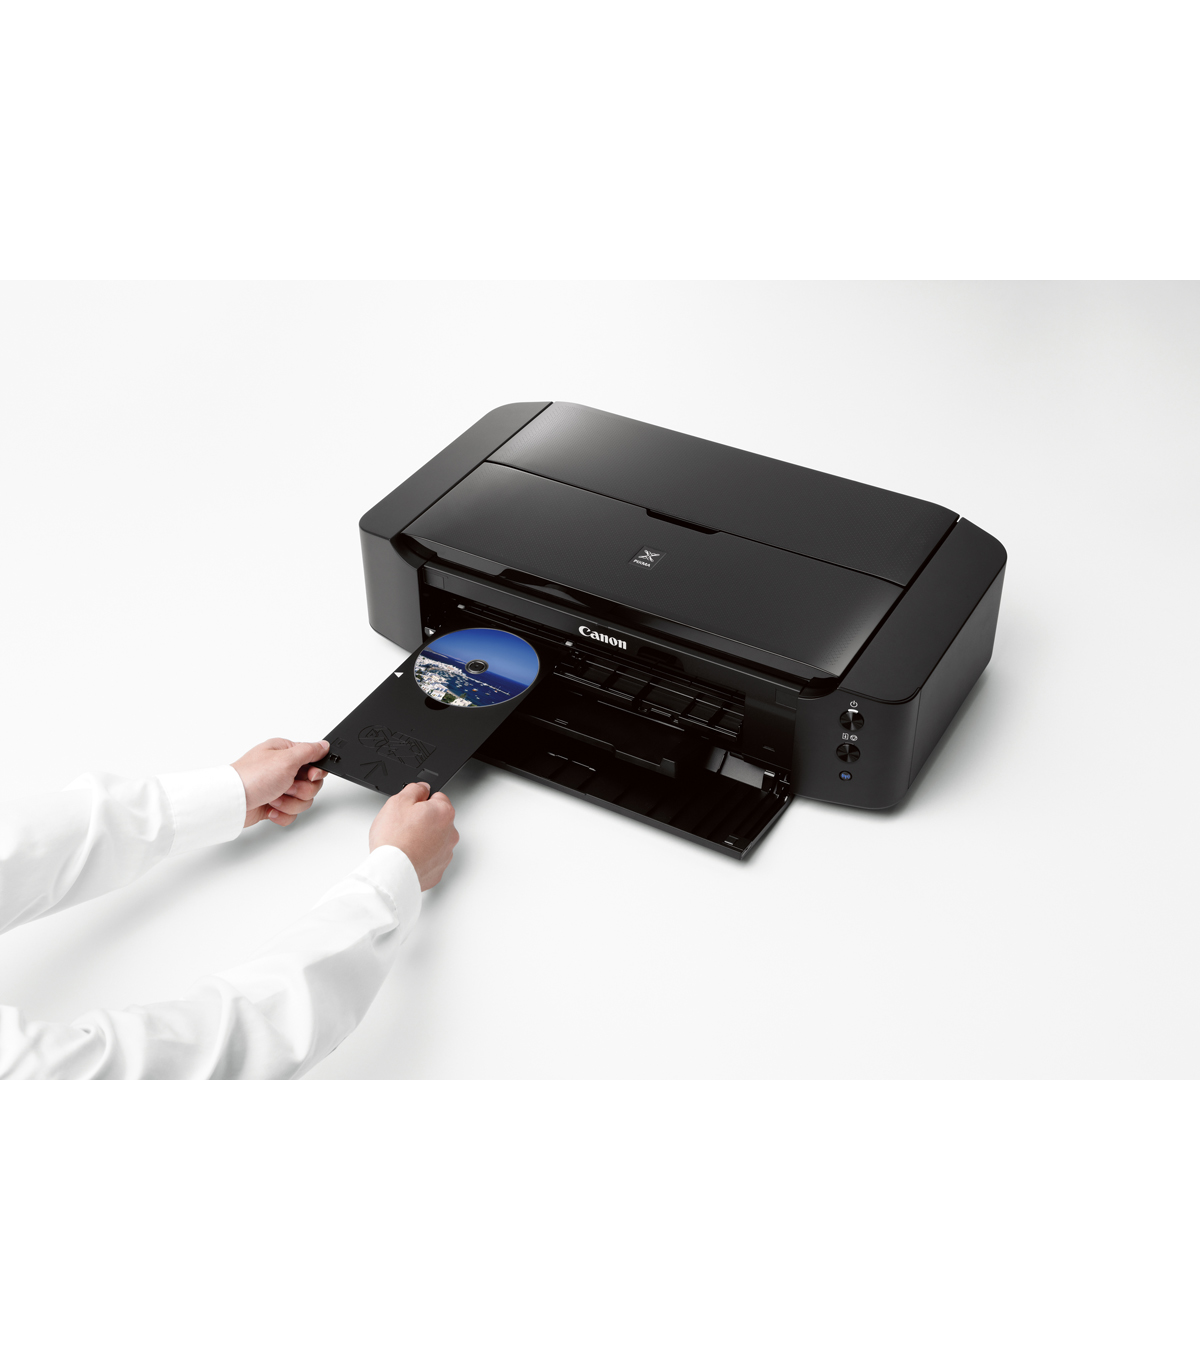 Canon PIXMA iP8720 Crafting Printer